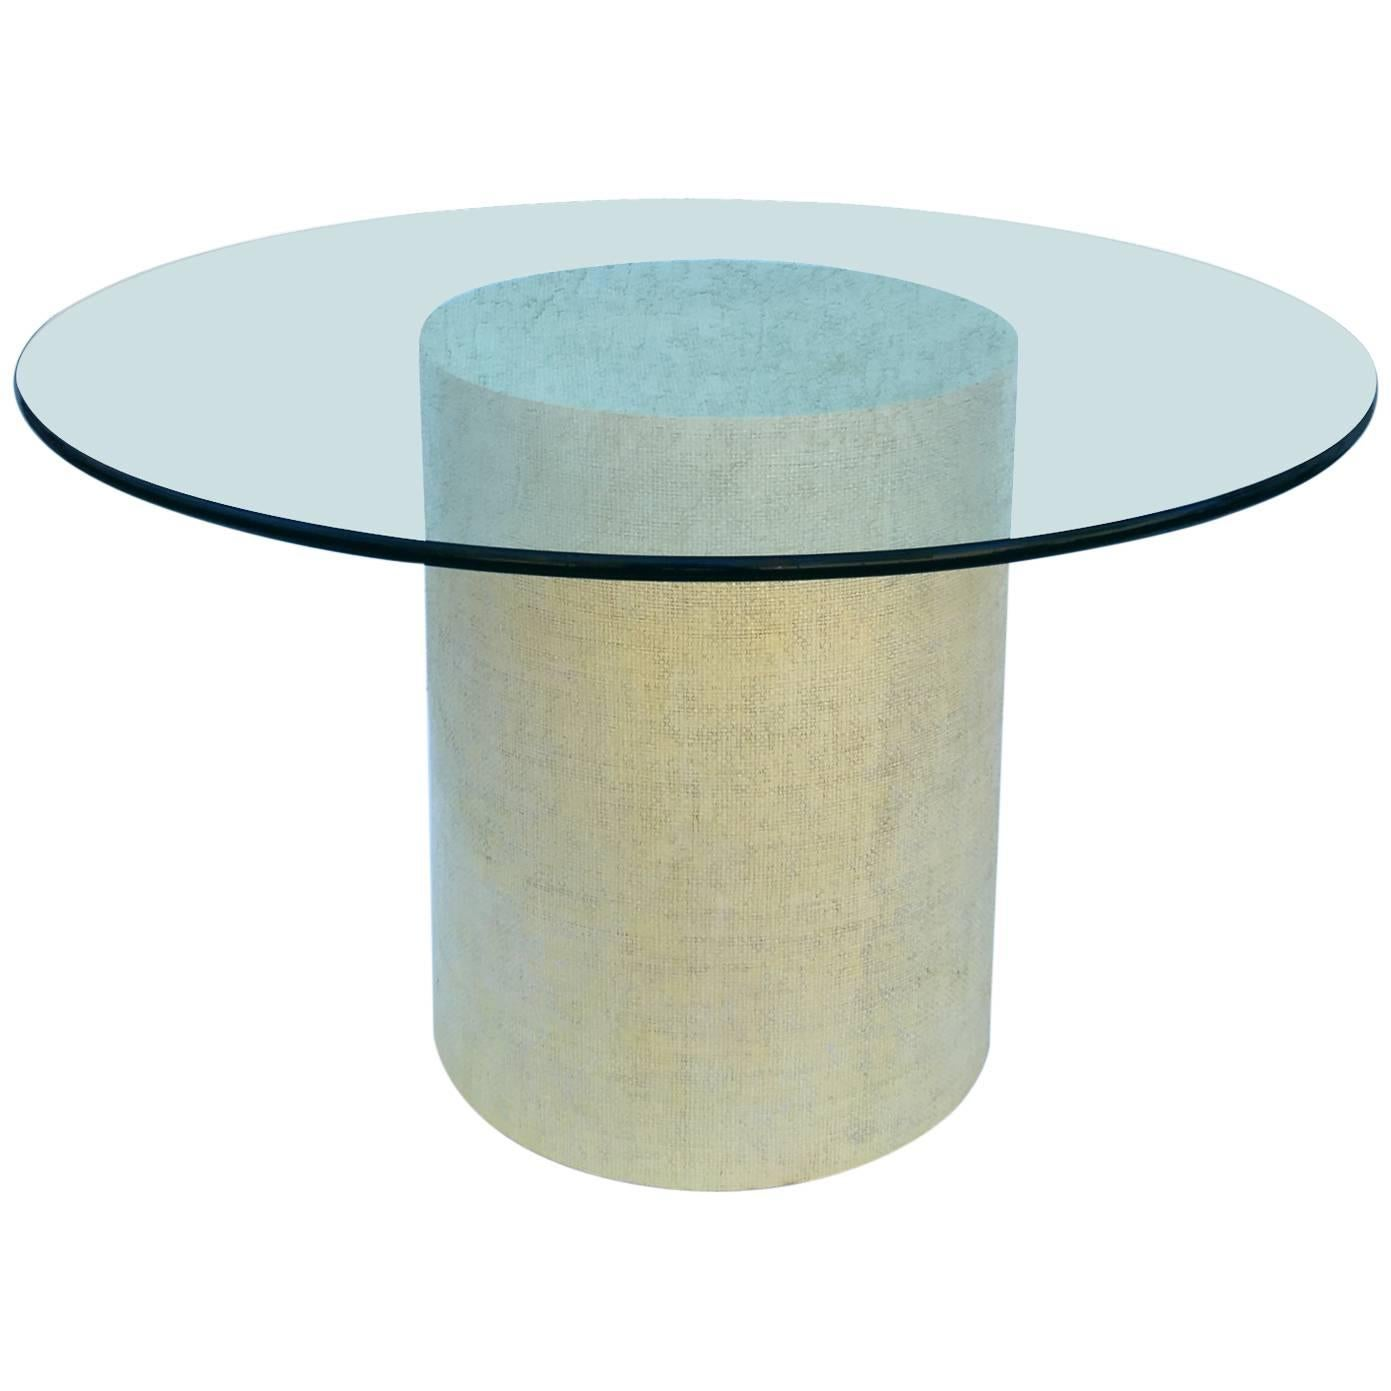 Grasscloth and Glass Dining Table by Steve Chase